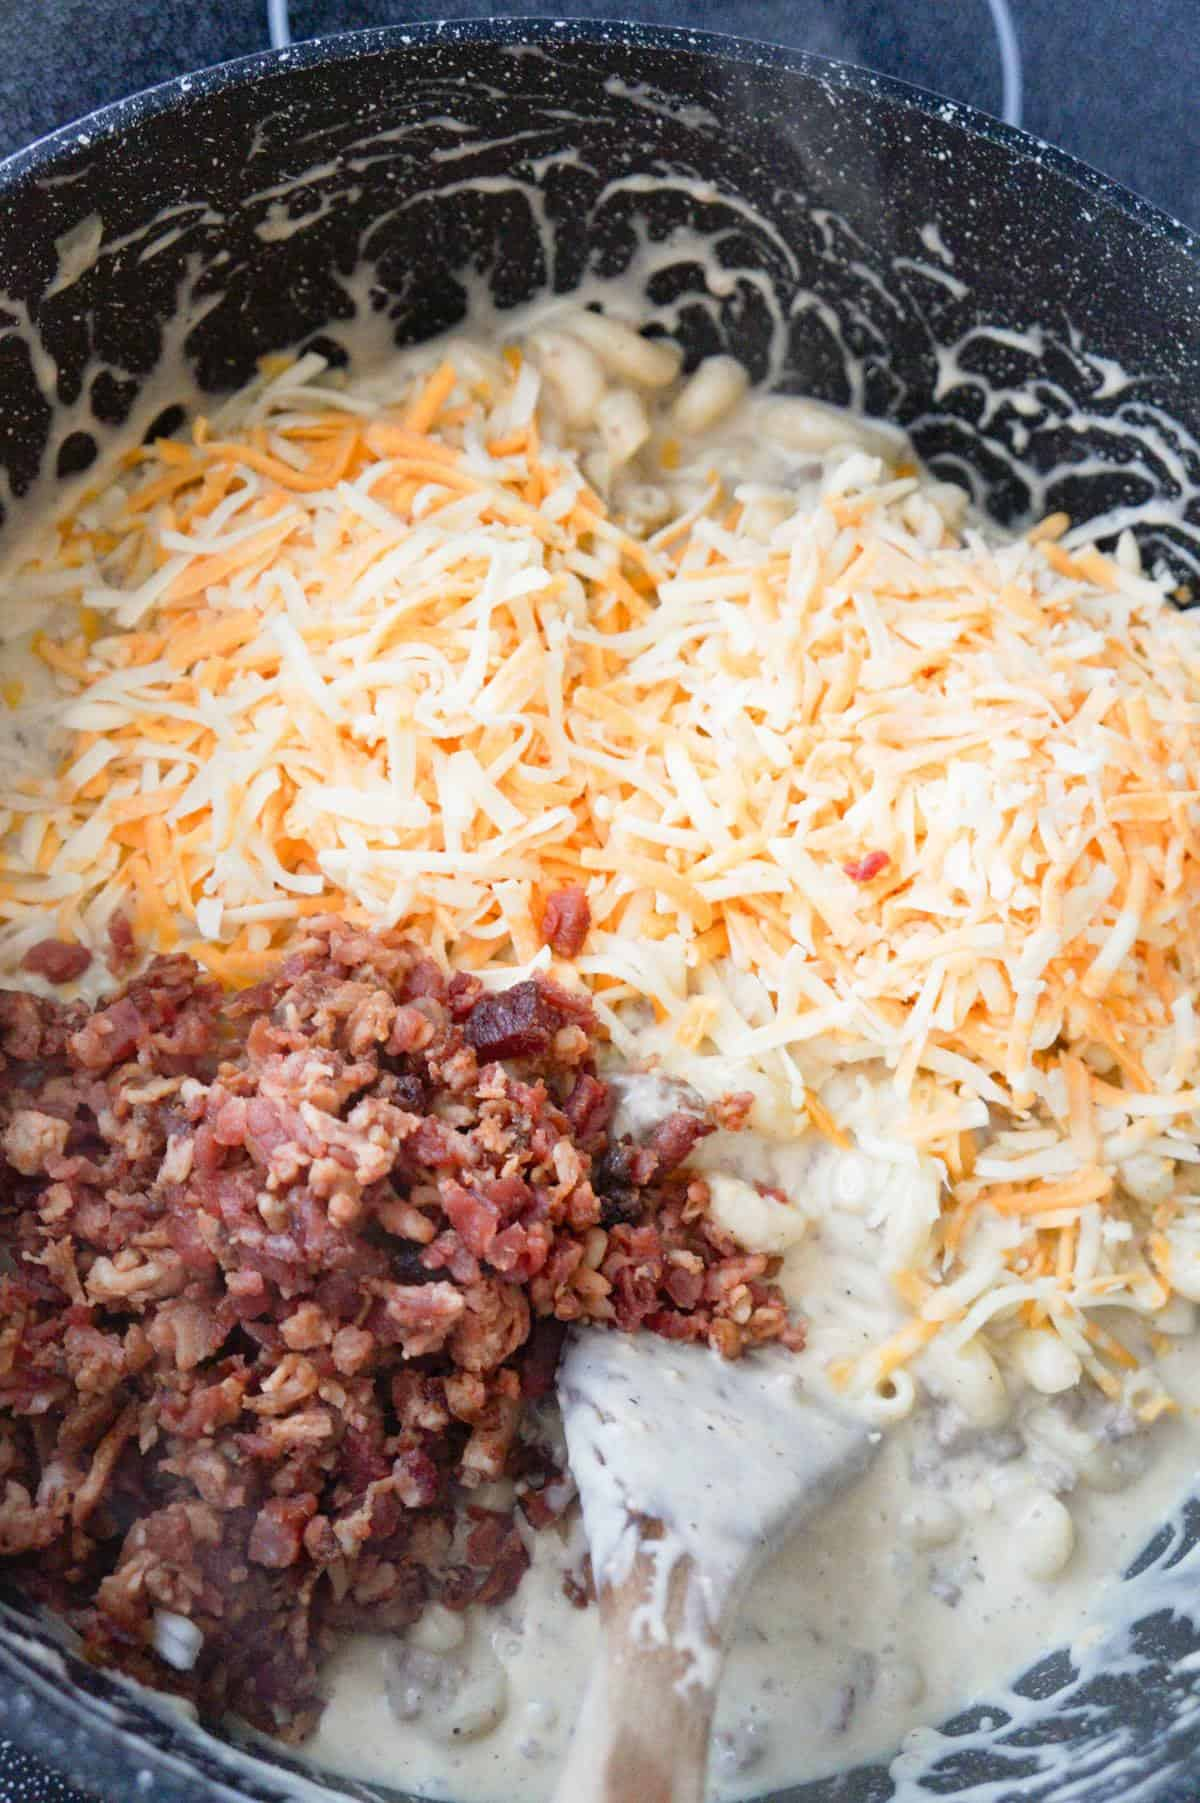 shredded cheese and crumbled bacon on top of creamy pasta in a pot